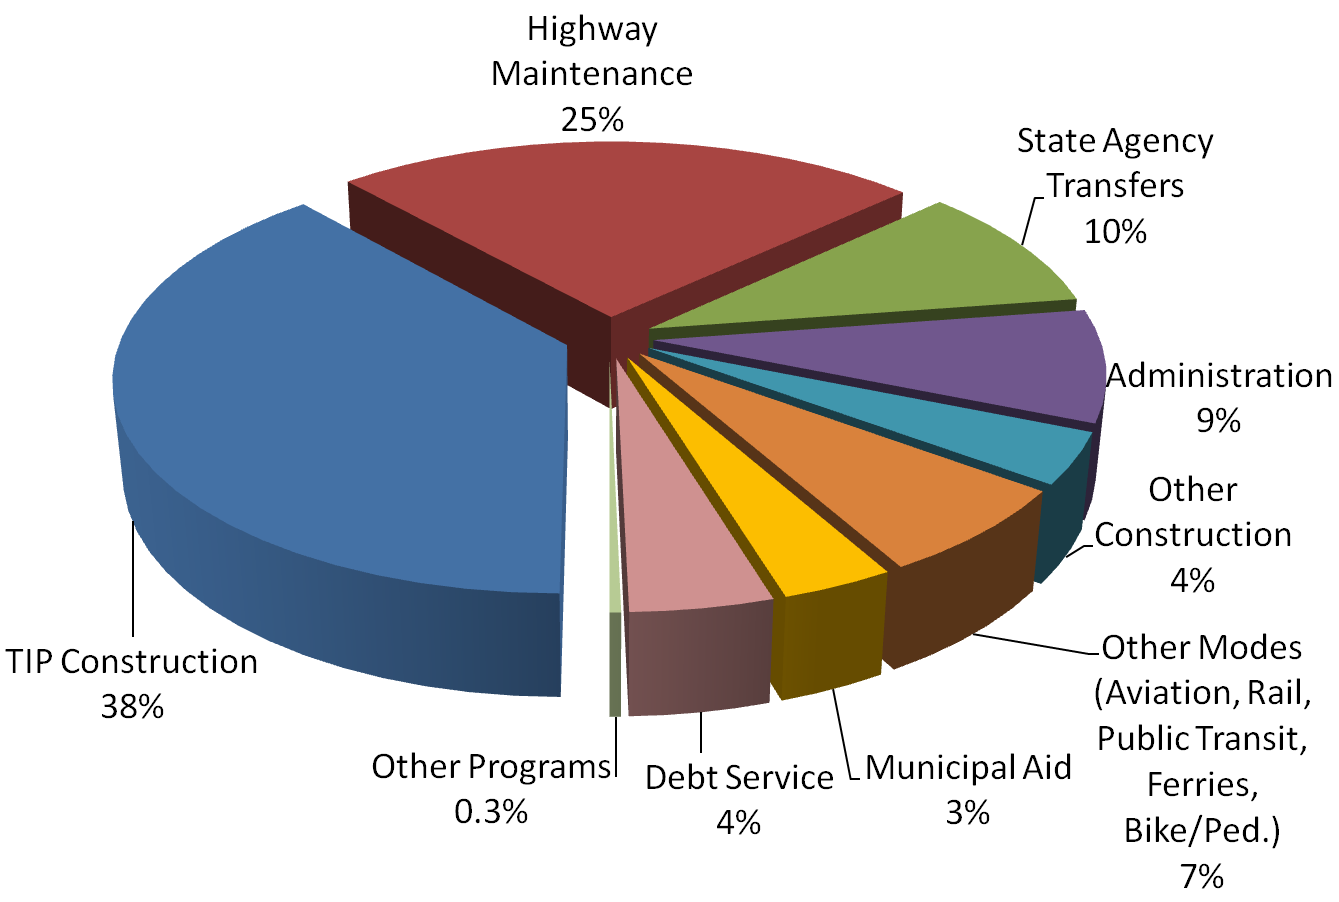 Graph - NC Dept of Transportation funding distribution, 2010-11